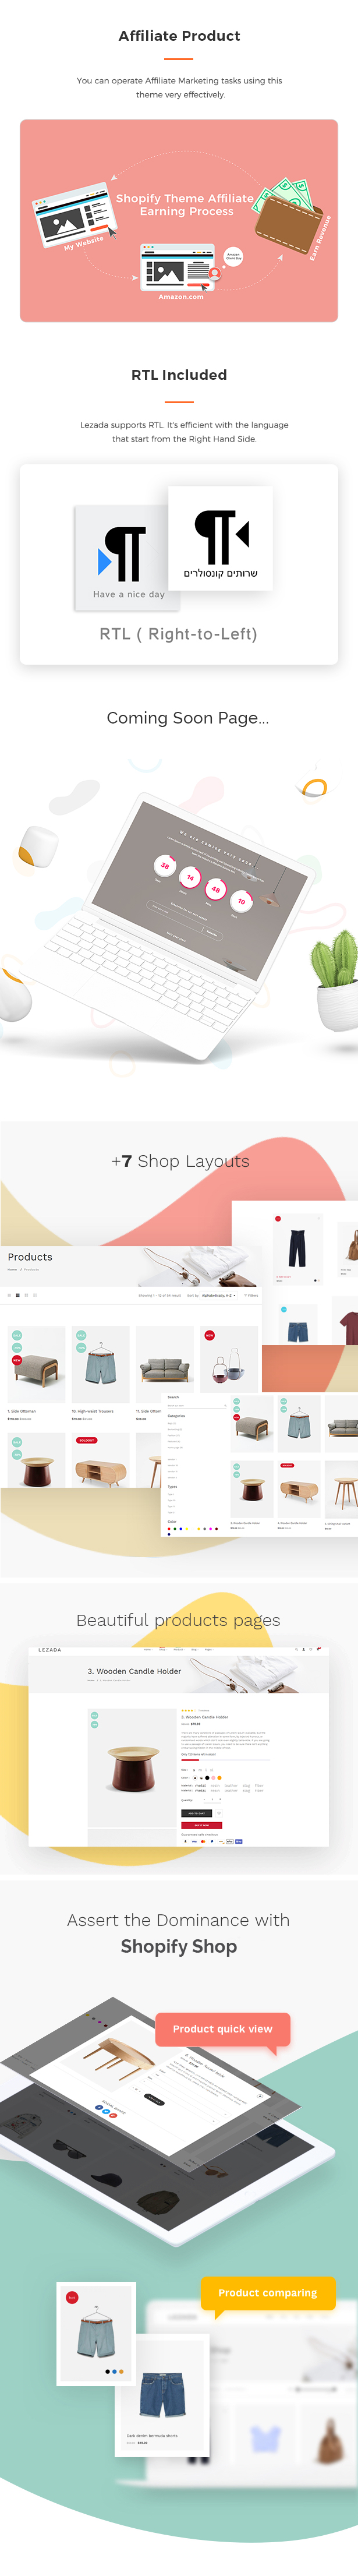 Lezada - Multipurpose Shopify Theme - 6